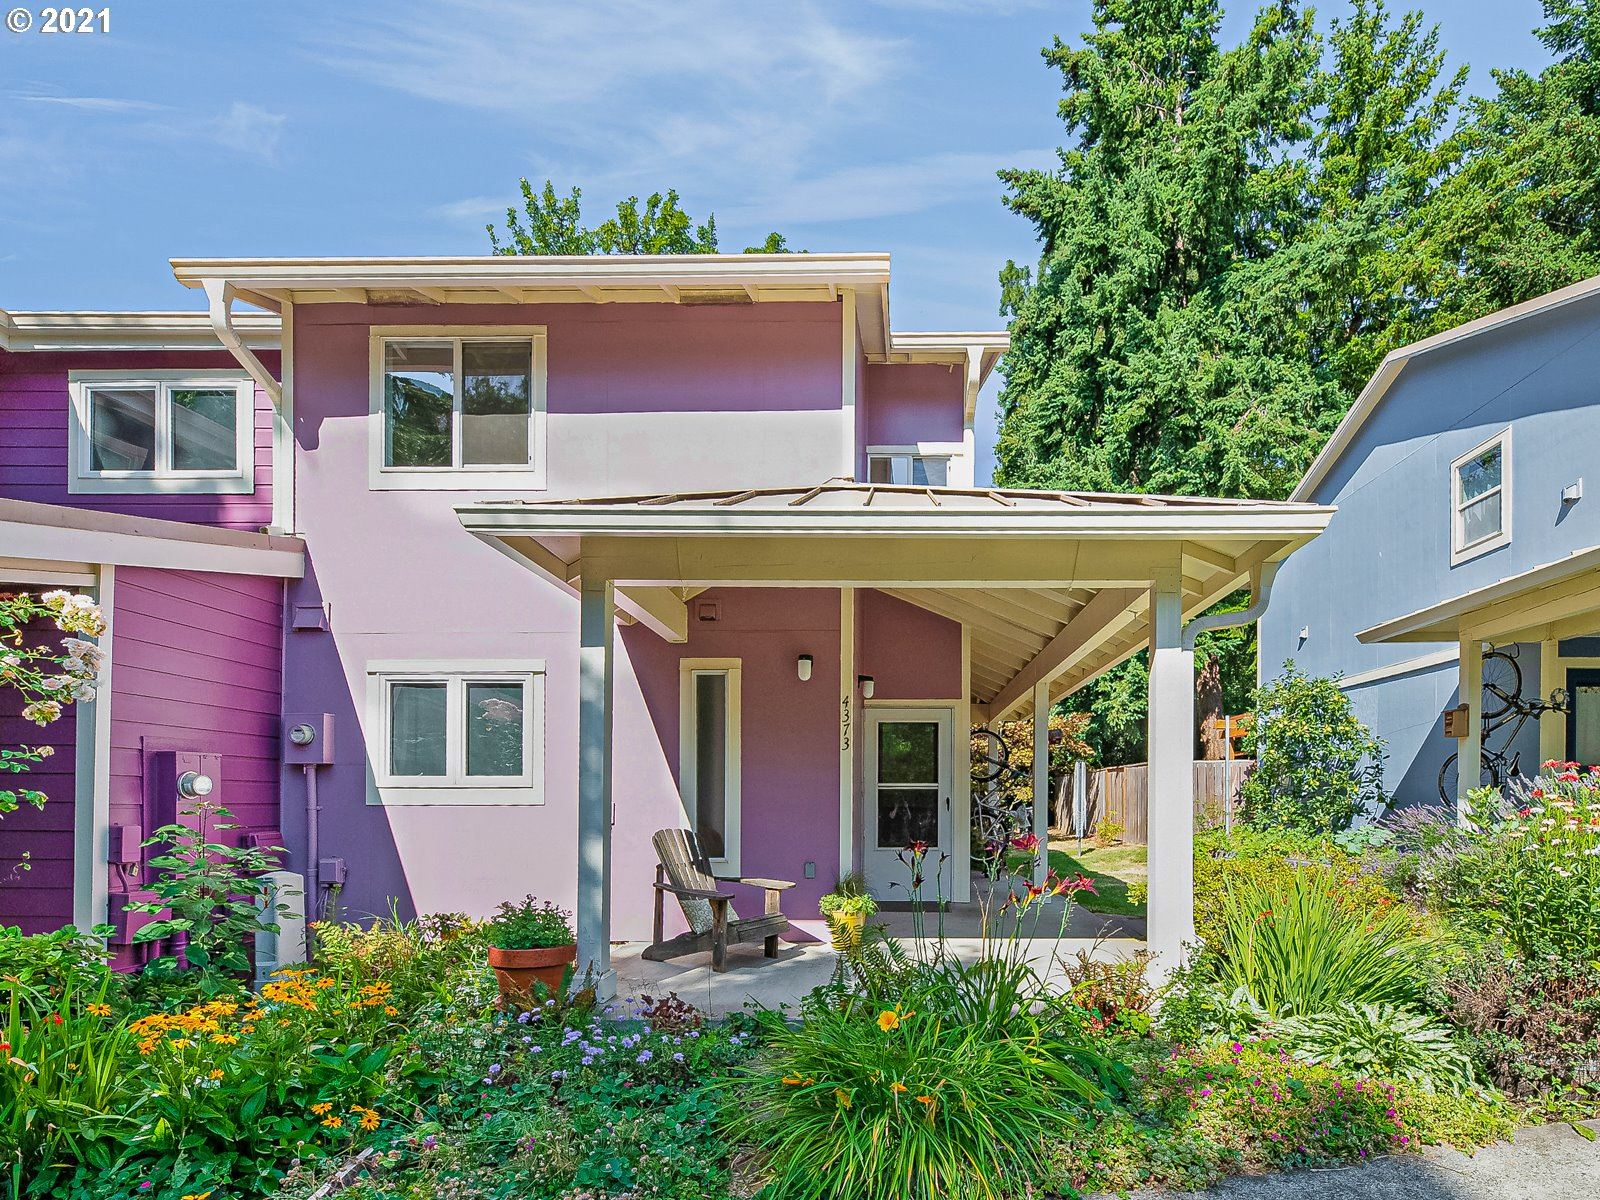 4373 SW 94TH AVE, Portland, OR 97225 - MLS#: 21451736